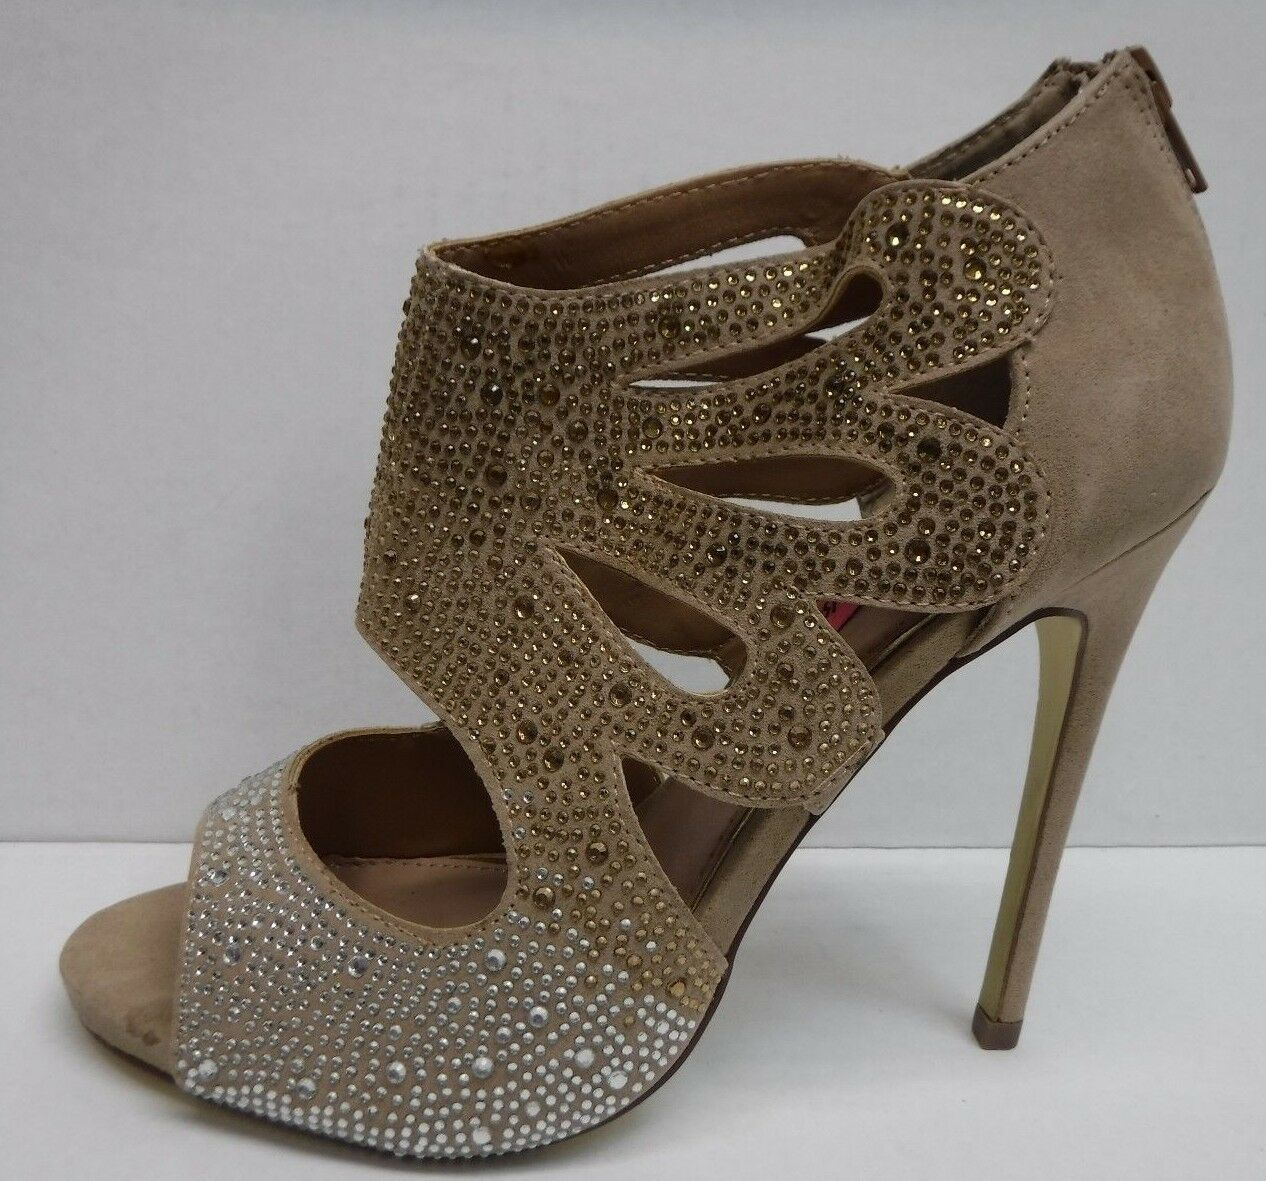 Betsey Johnson Size 8.5 Beige Heels New Womens shoes